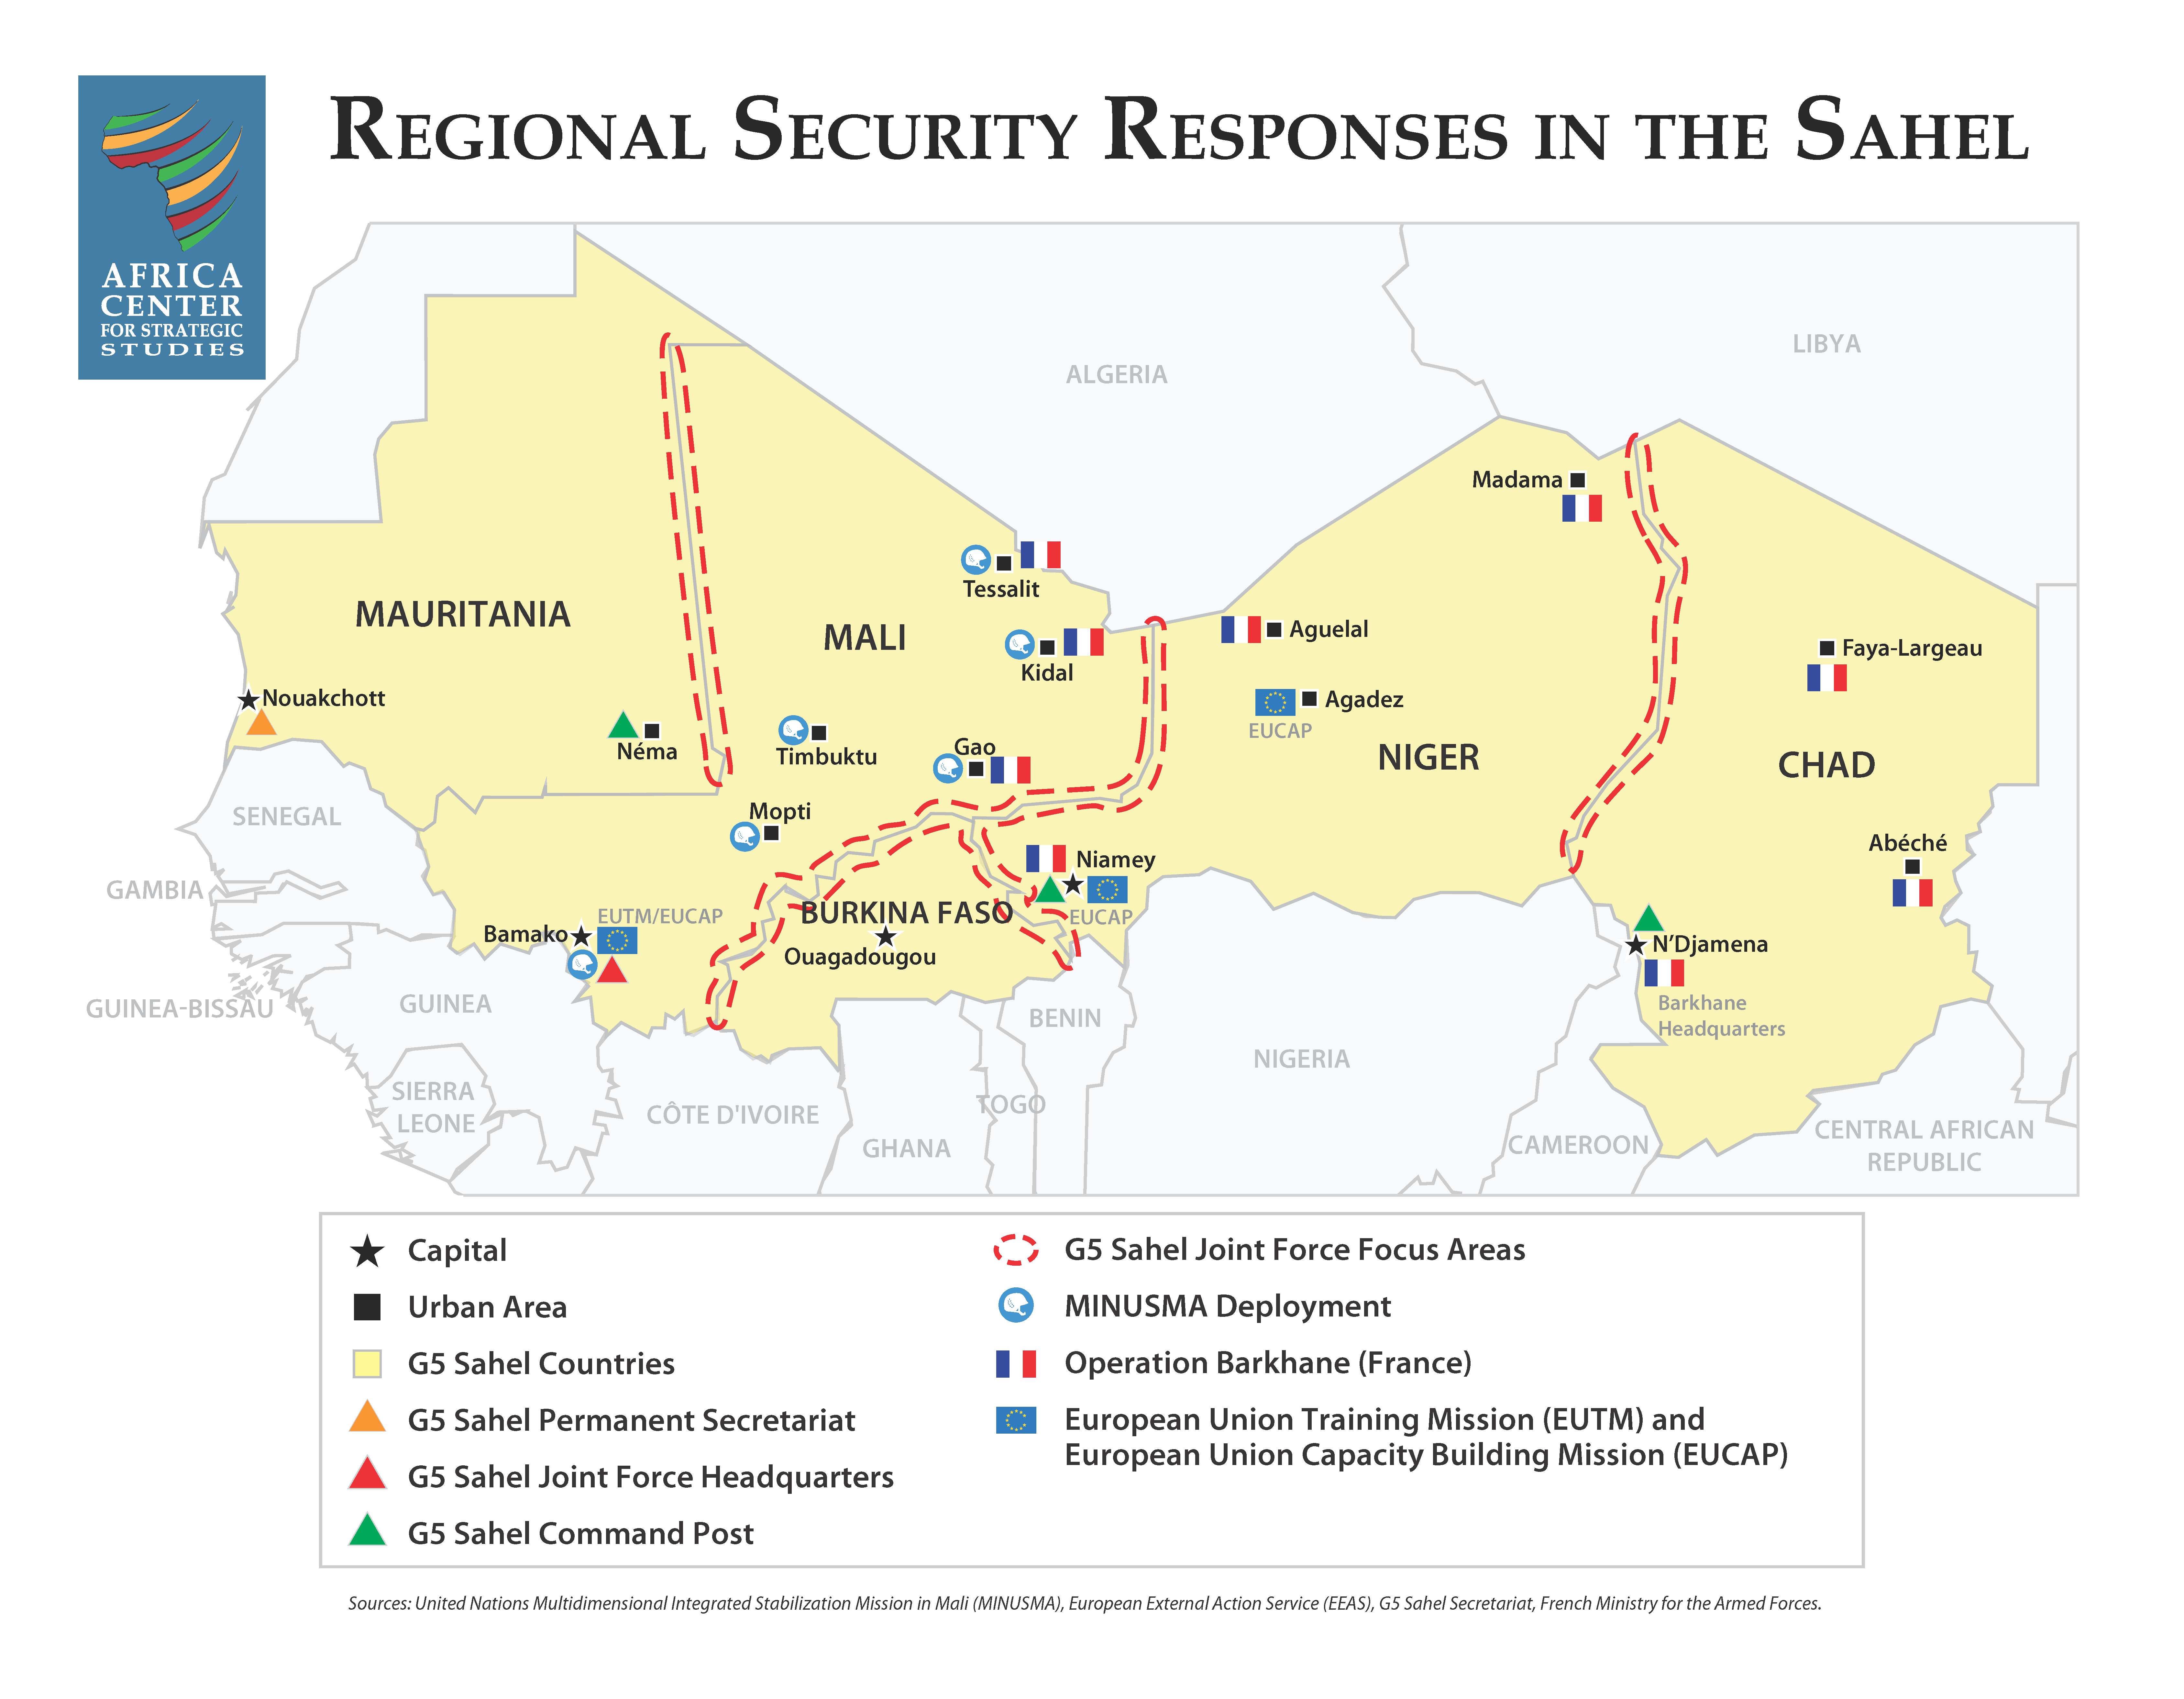 A Review Of Major Regional Security Efforts In The Sahel Africa